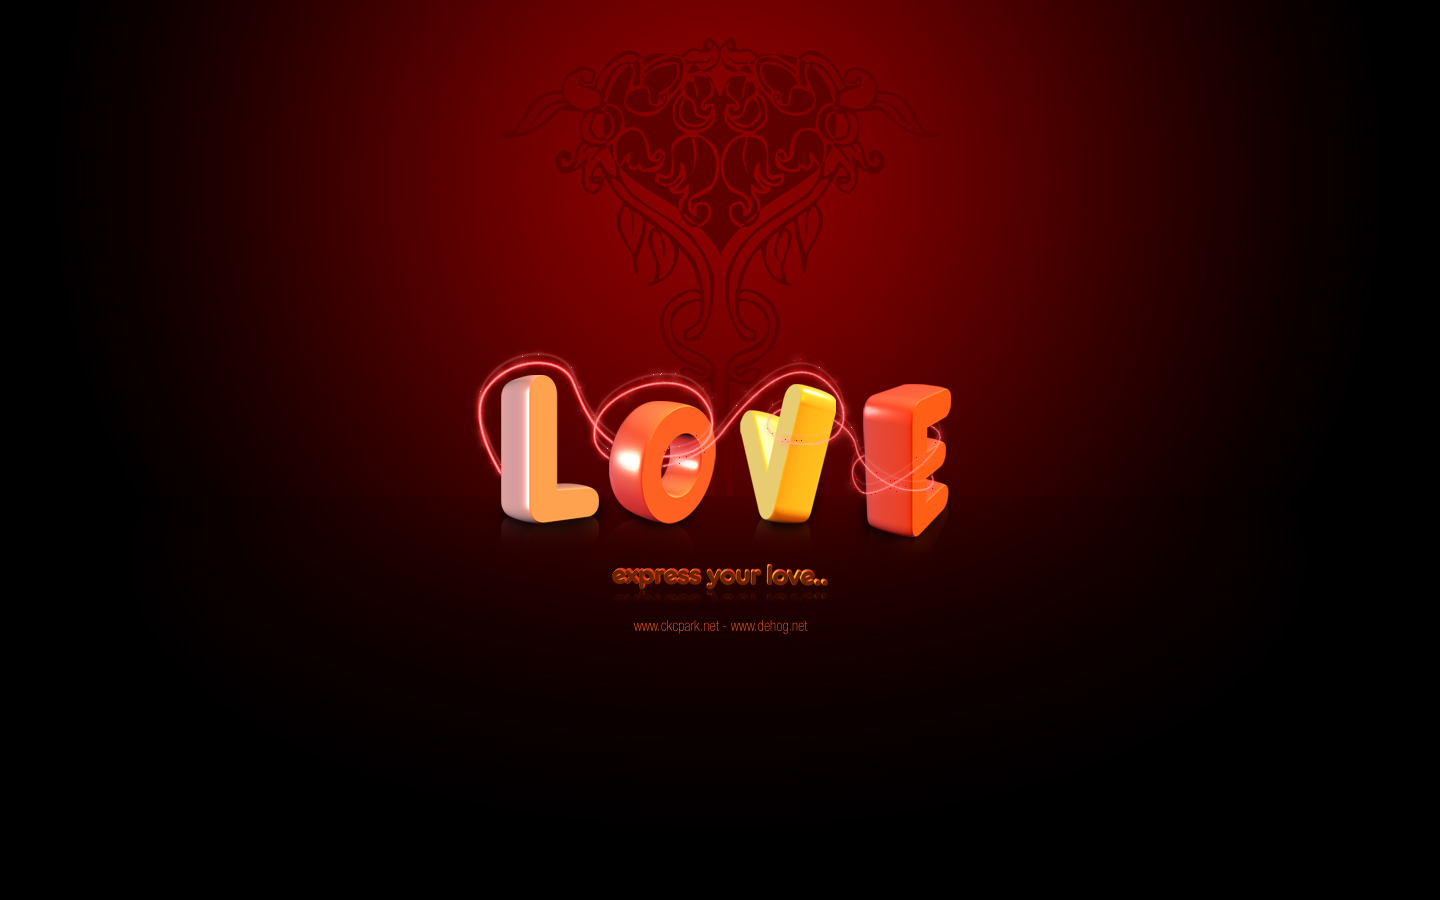 Love High Definition Wallpaper - Wallpaper, High ...